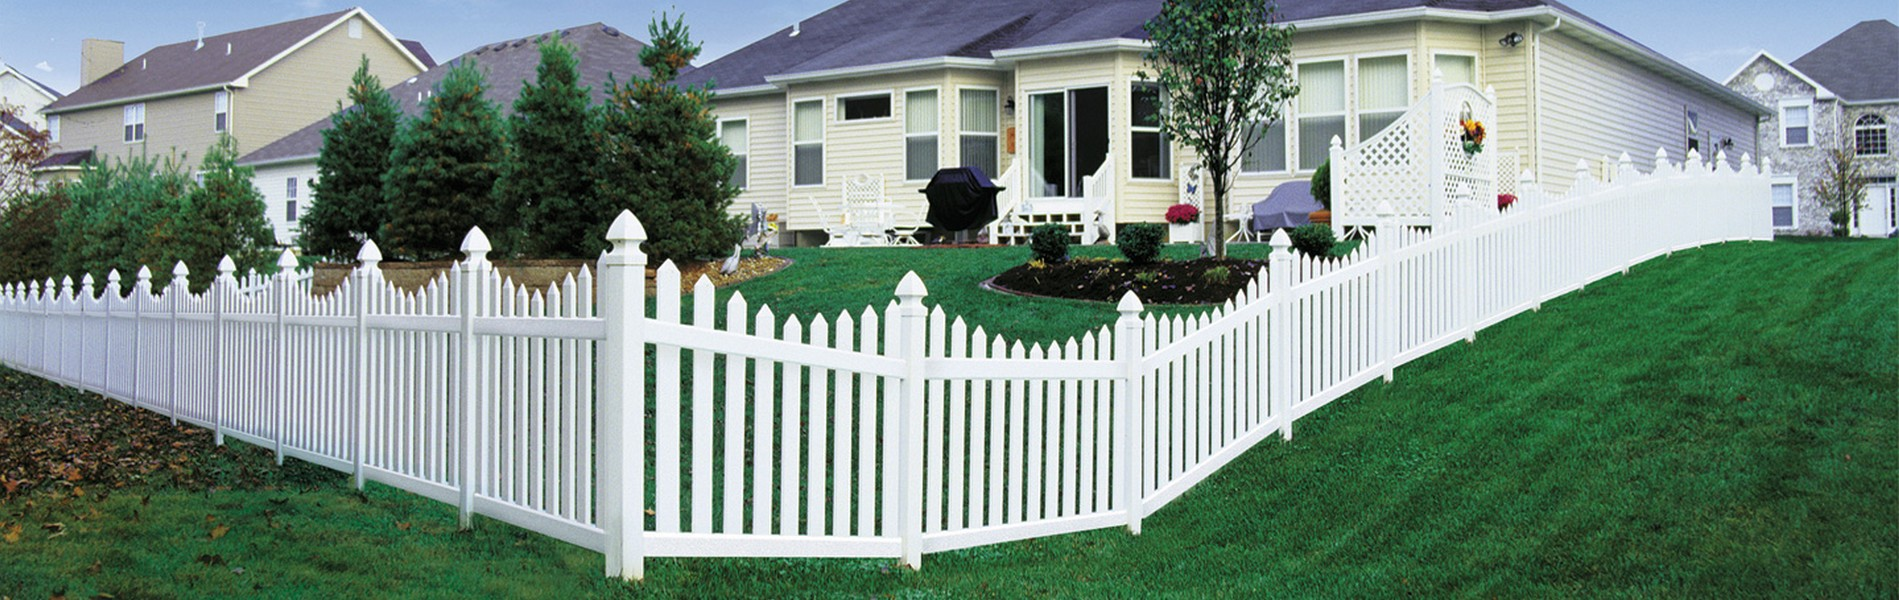 West Michigan fence installers